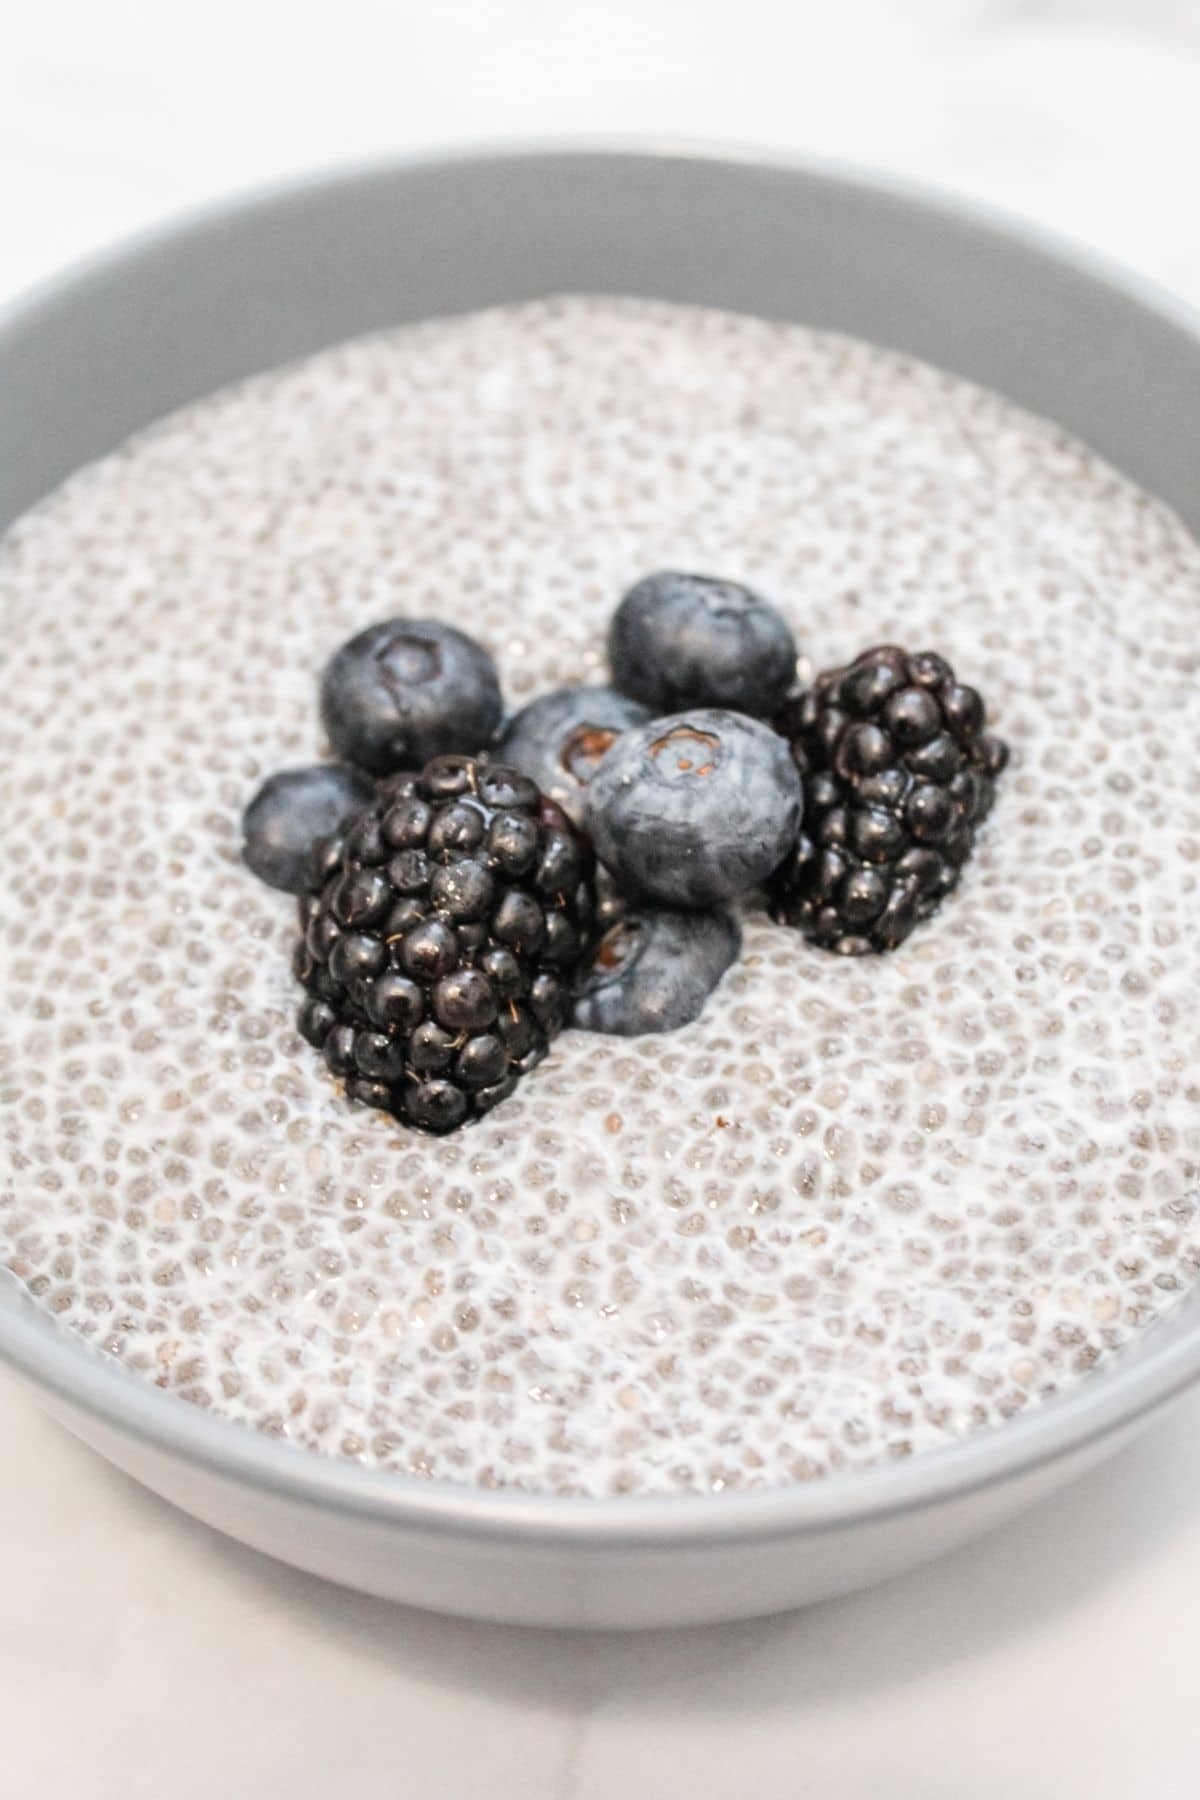 chia seed pudding mixture in a blue bowl on a white marble background